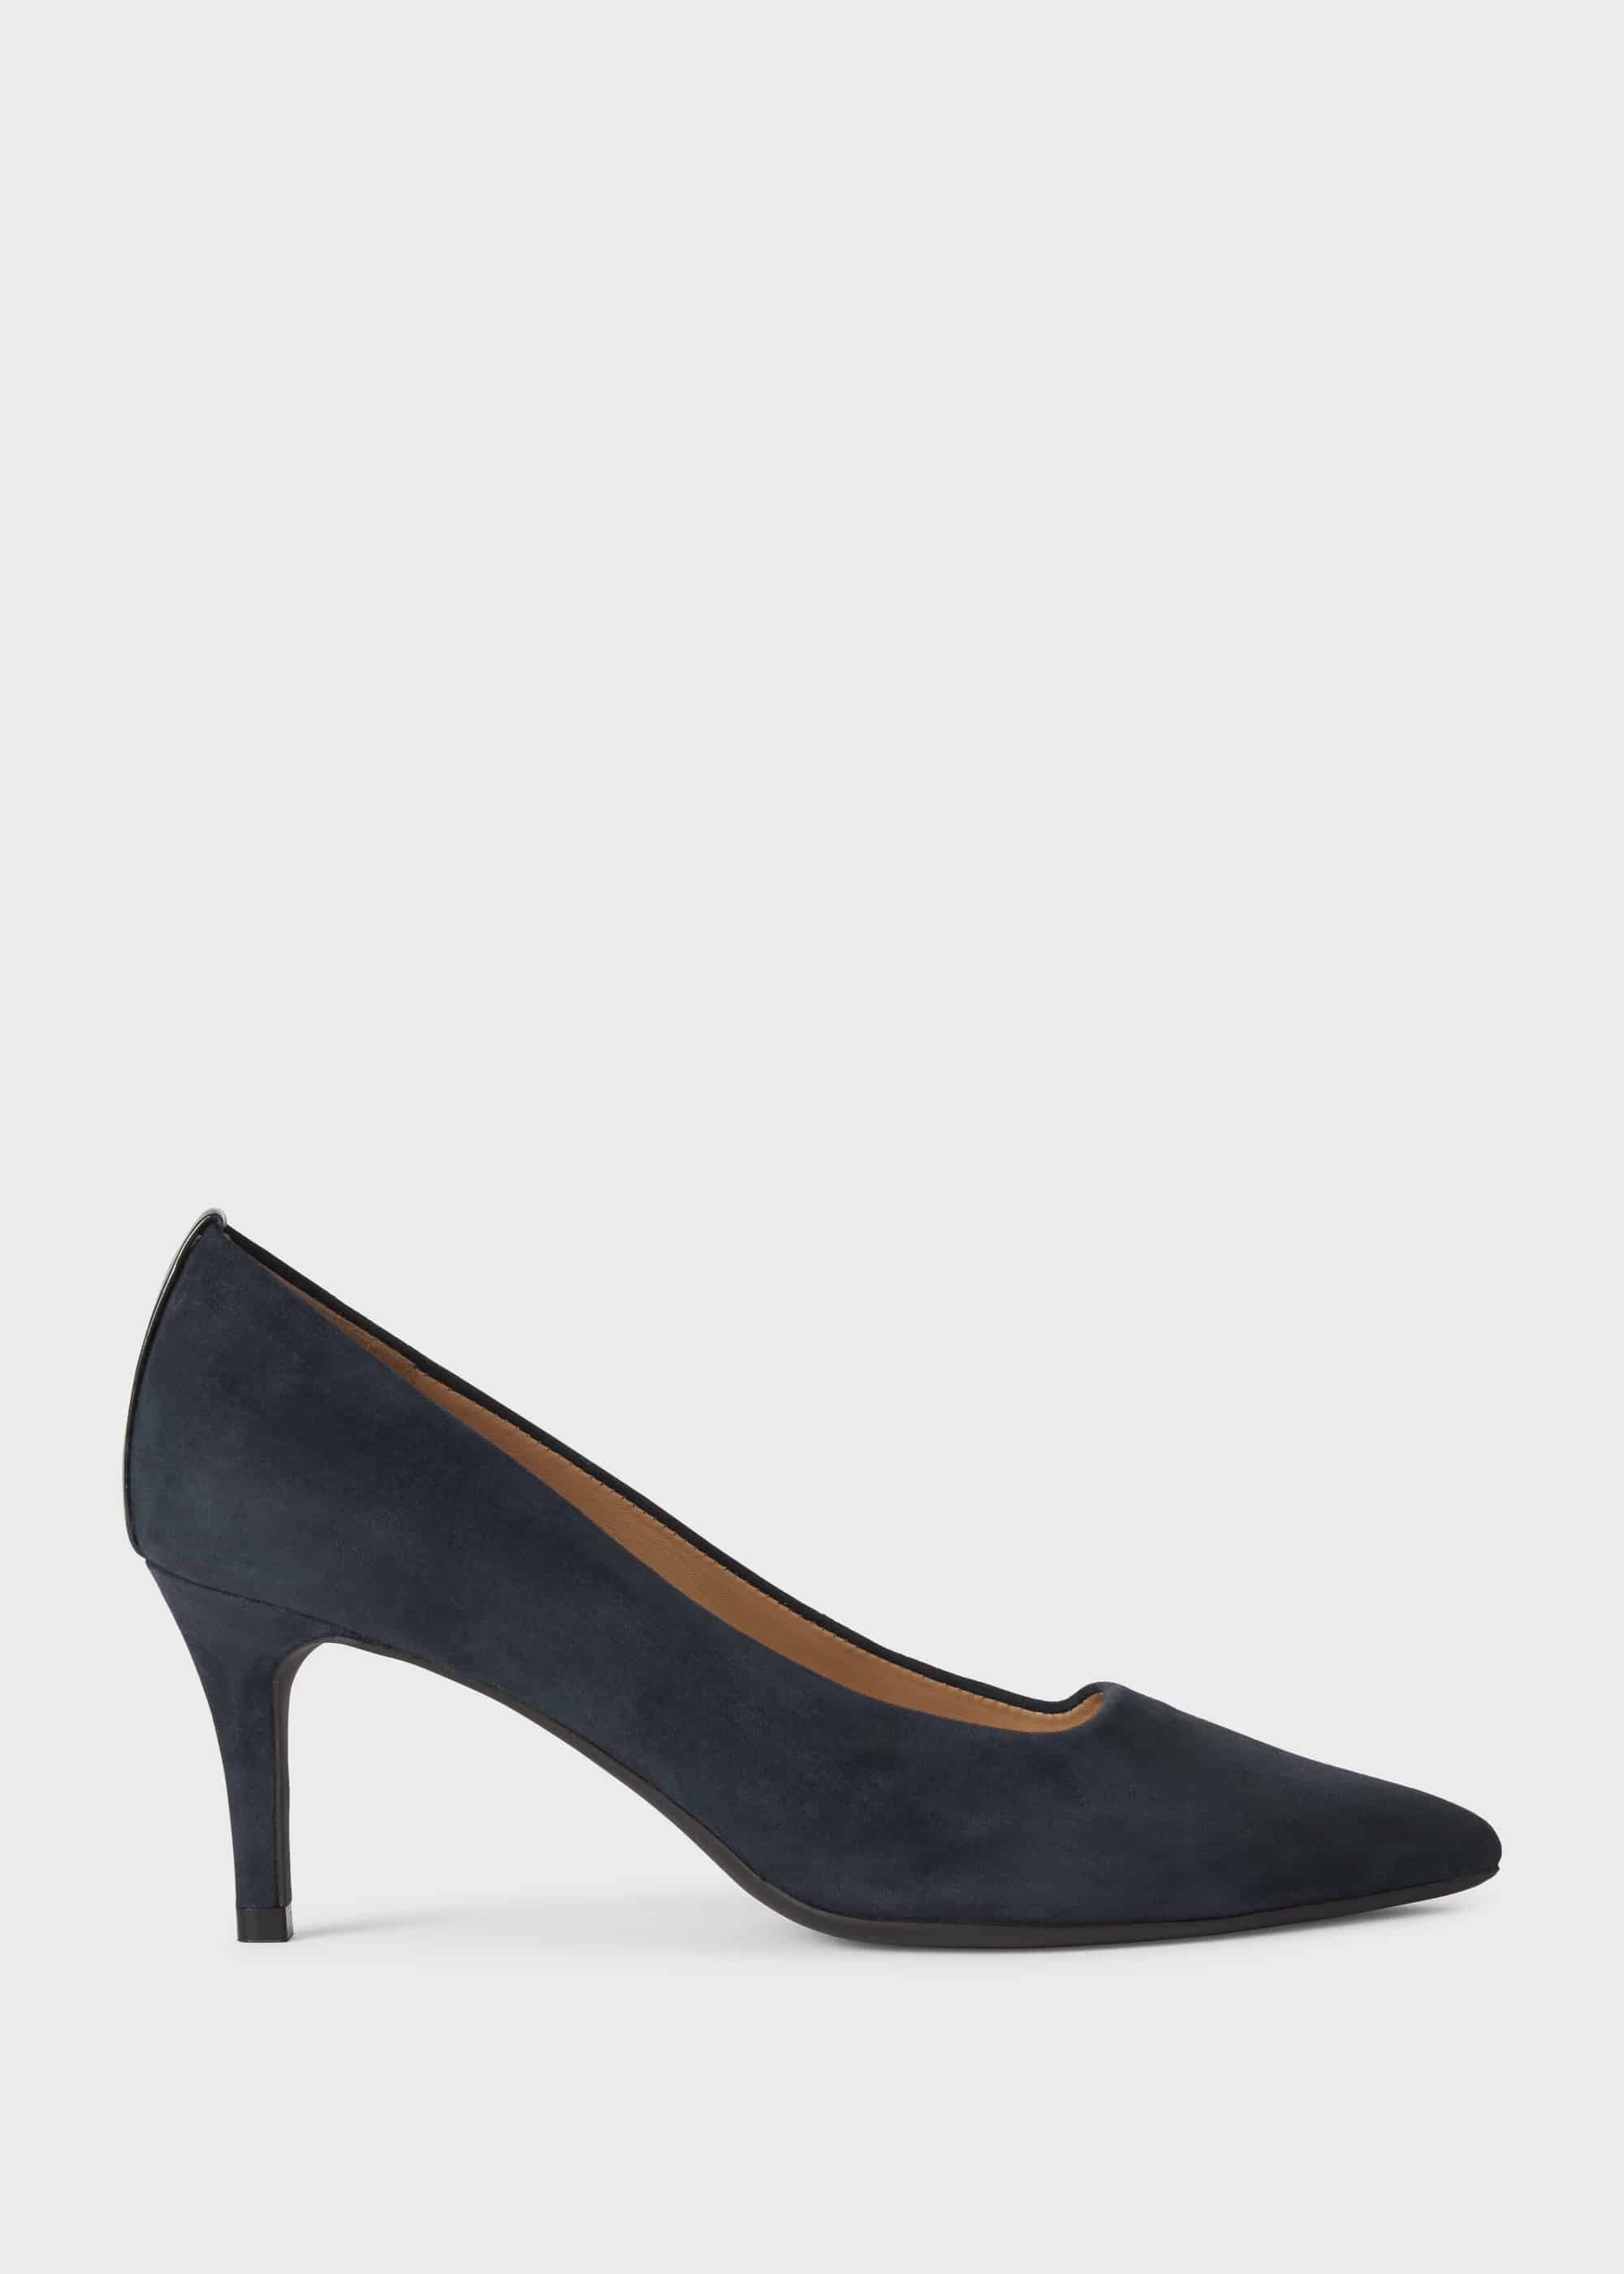 Hobbs Women Amy Suede Court Shoes